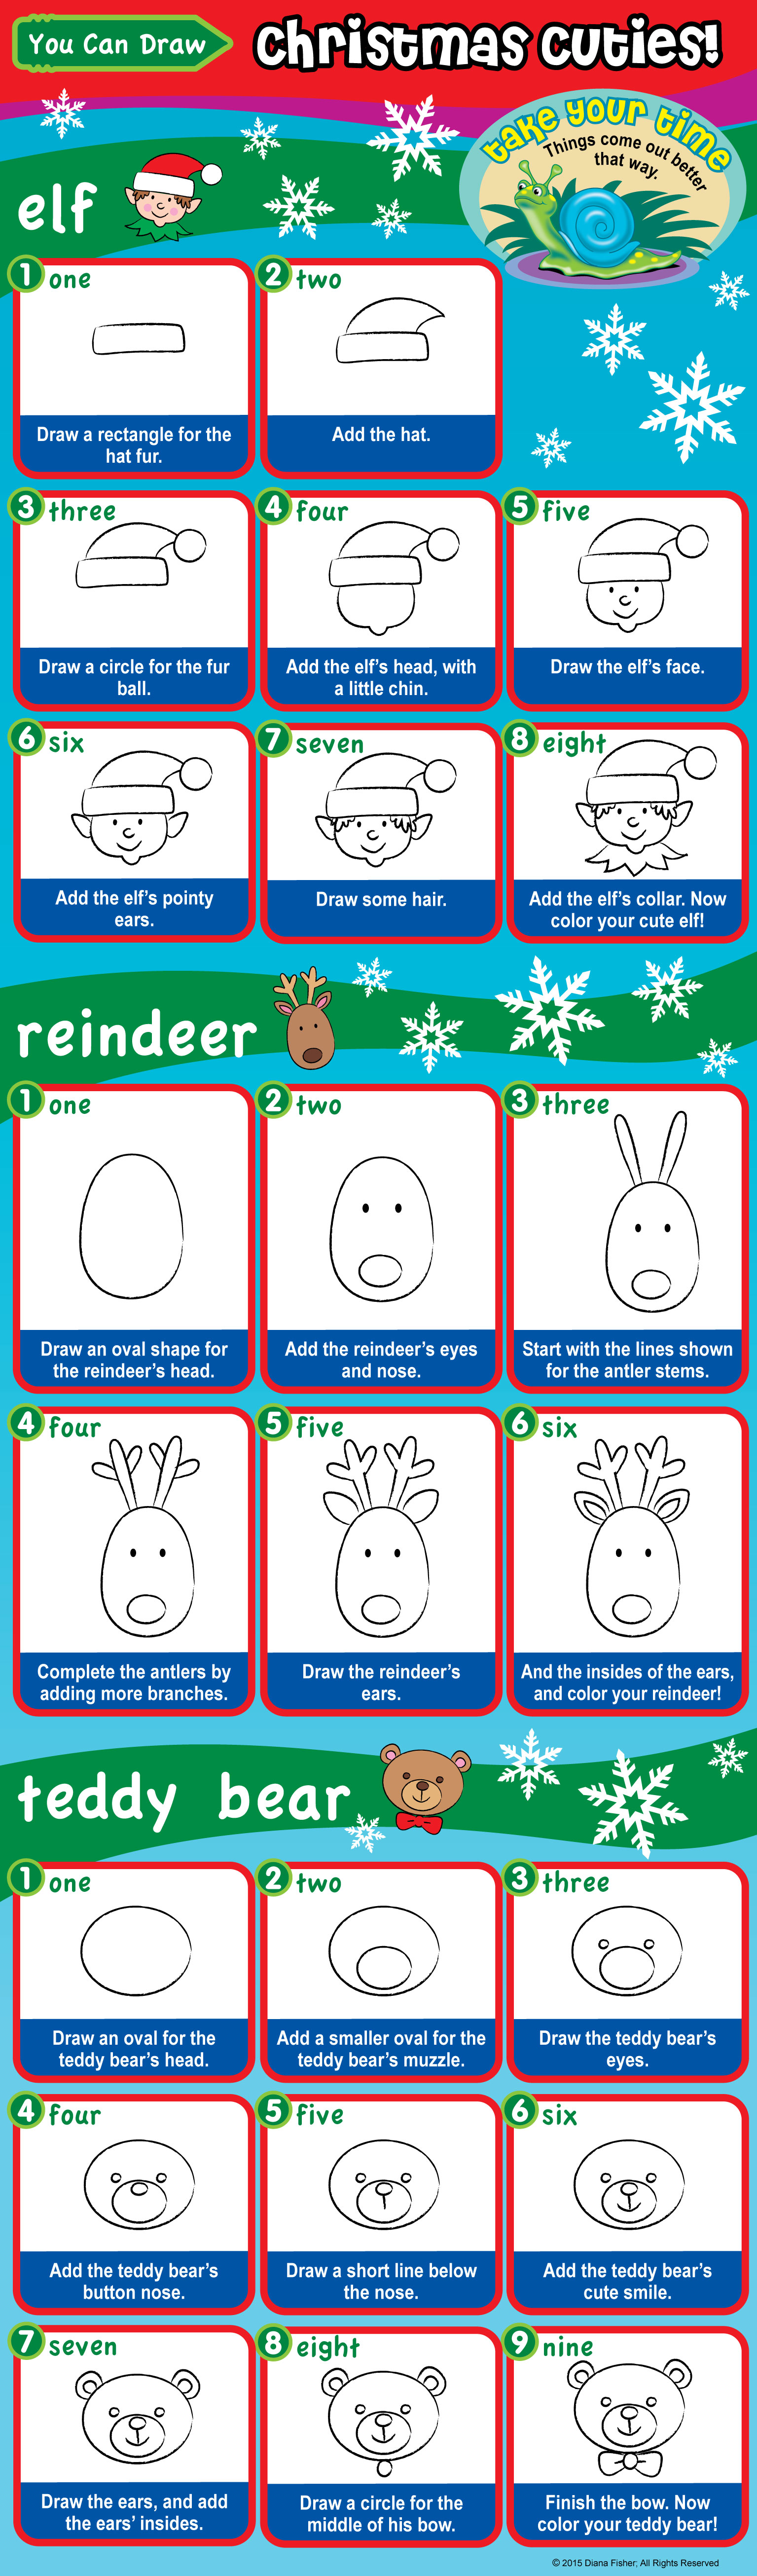 how to draw a reindeer, an elf, a teddy bear with east steps for kids